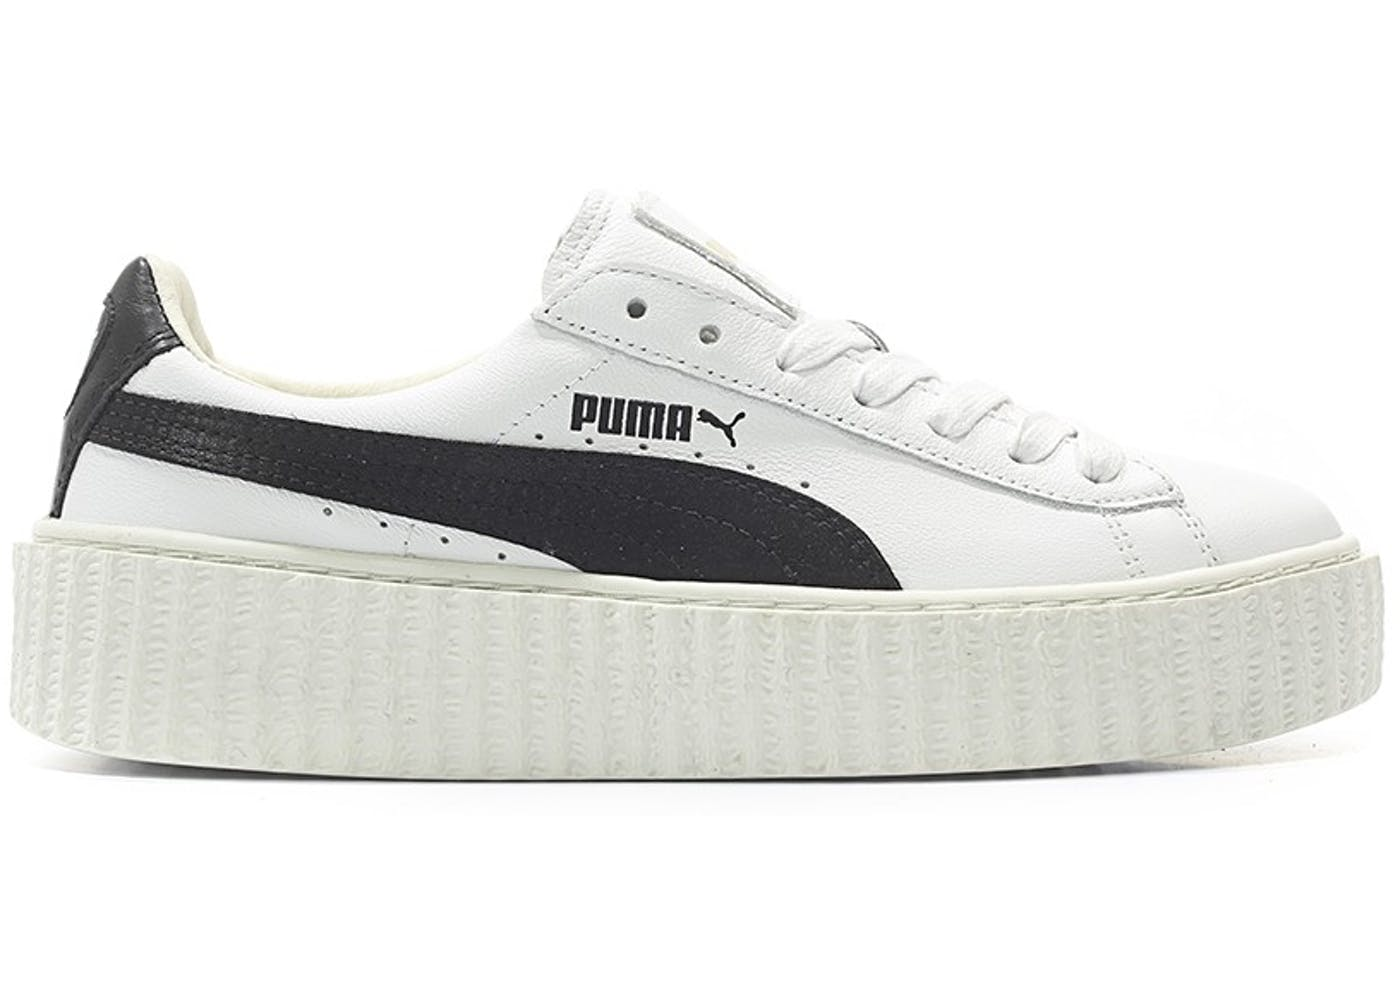 puma creeper rihanna fenty leather white w. Black Bedroom Furniture Sets. Home Design Ideas